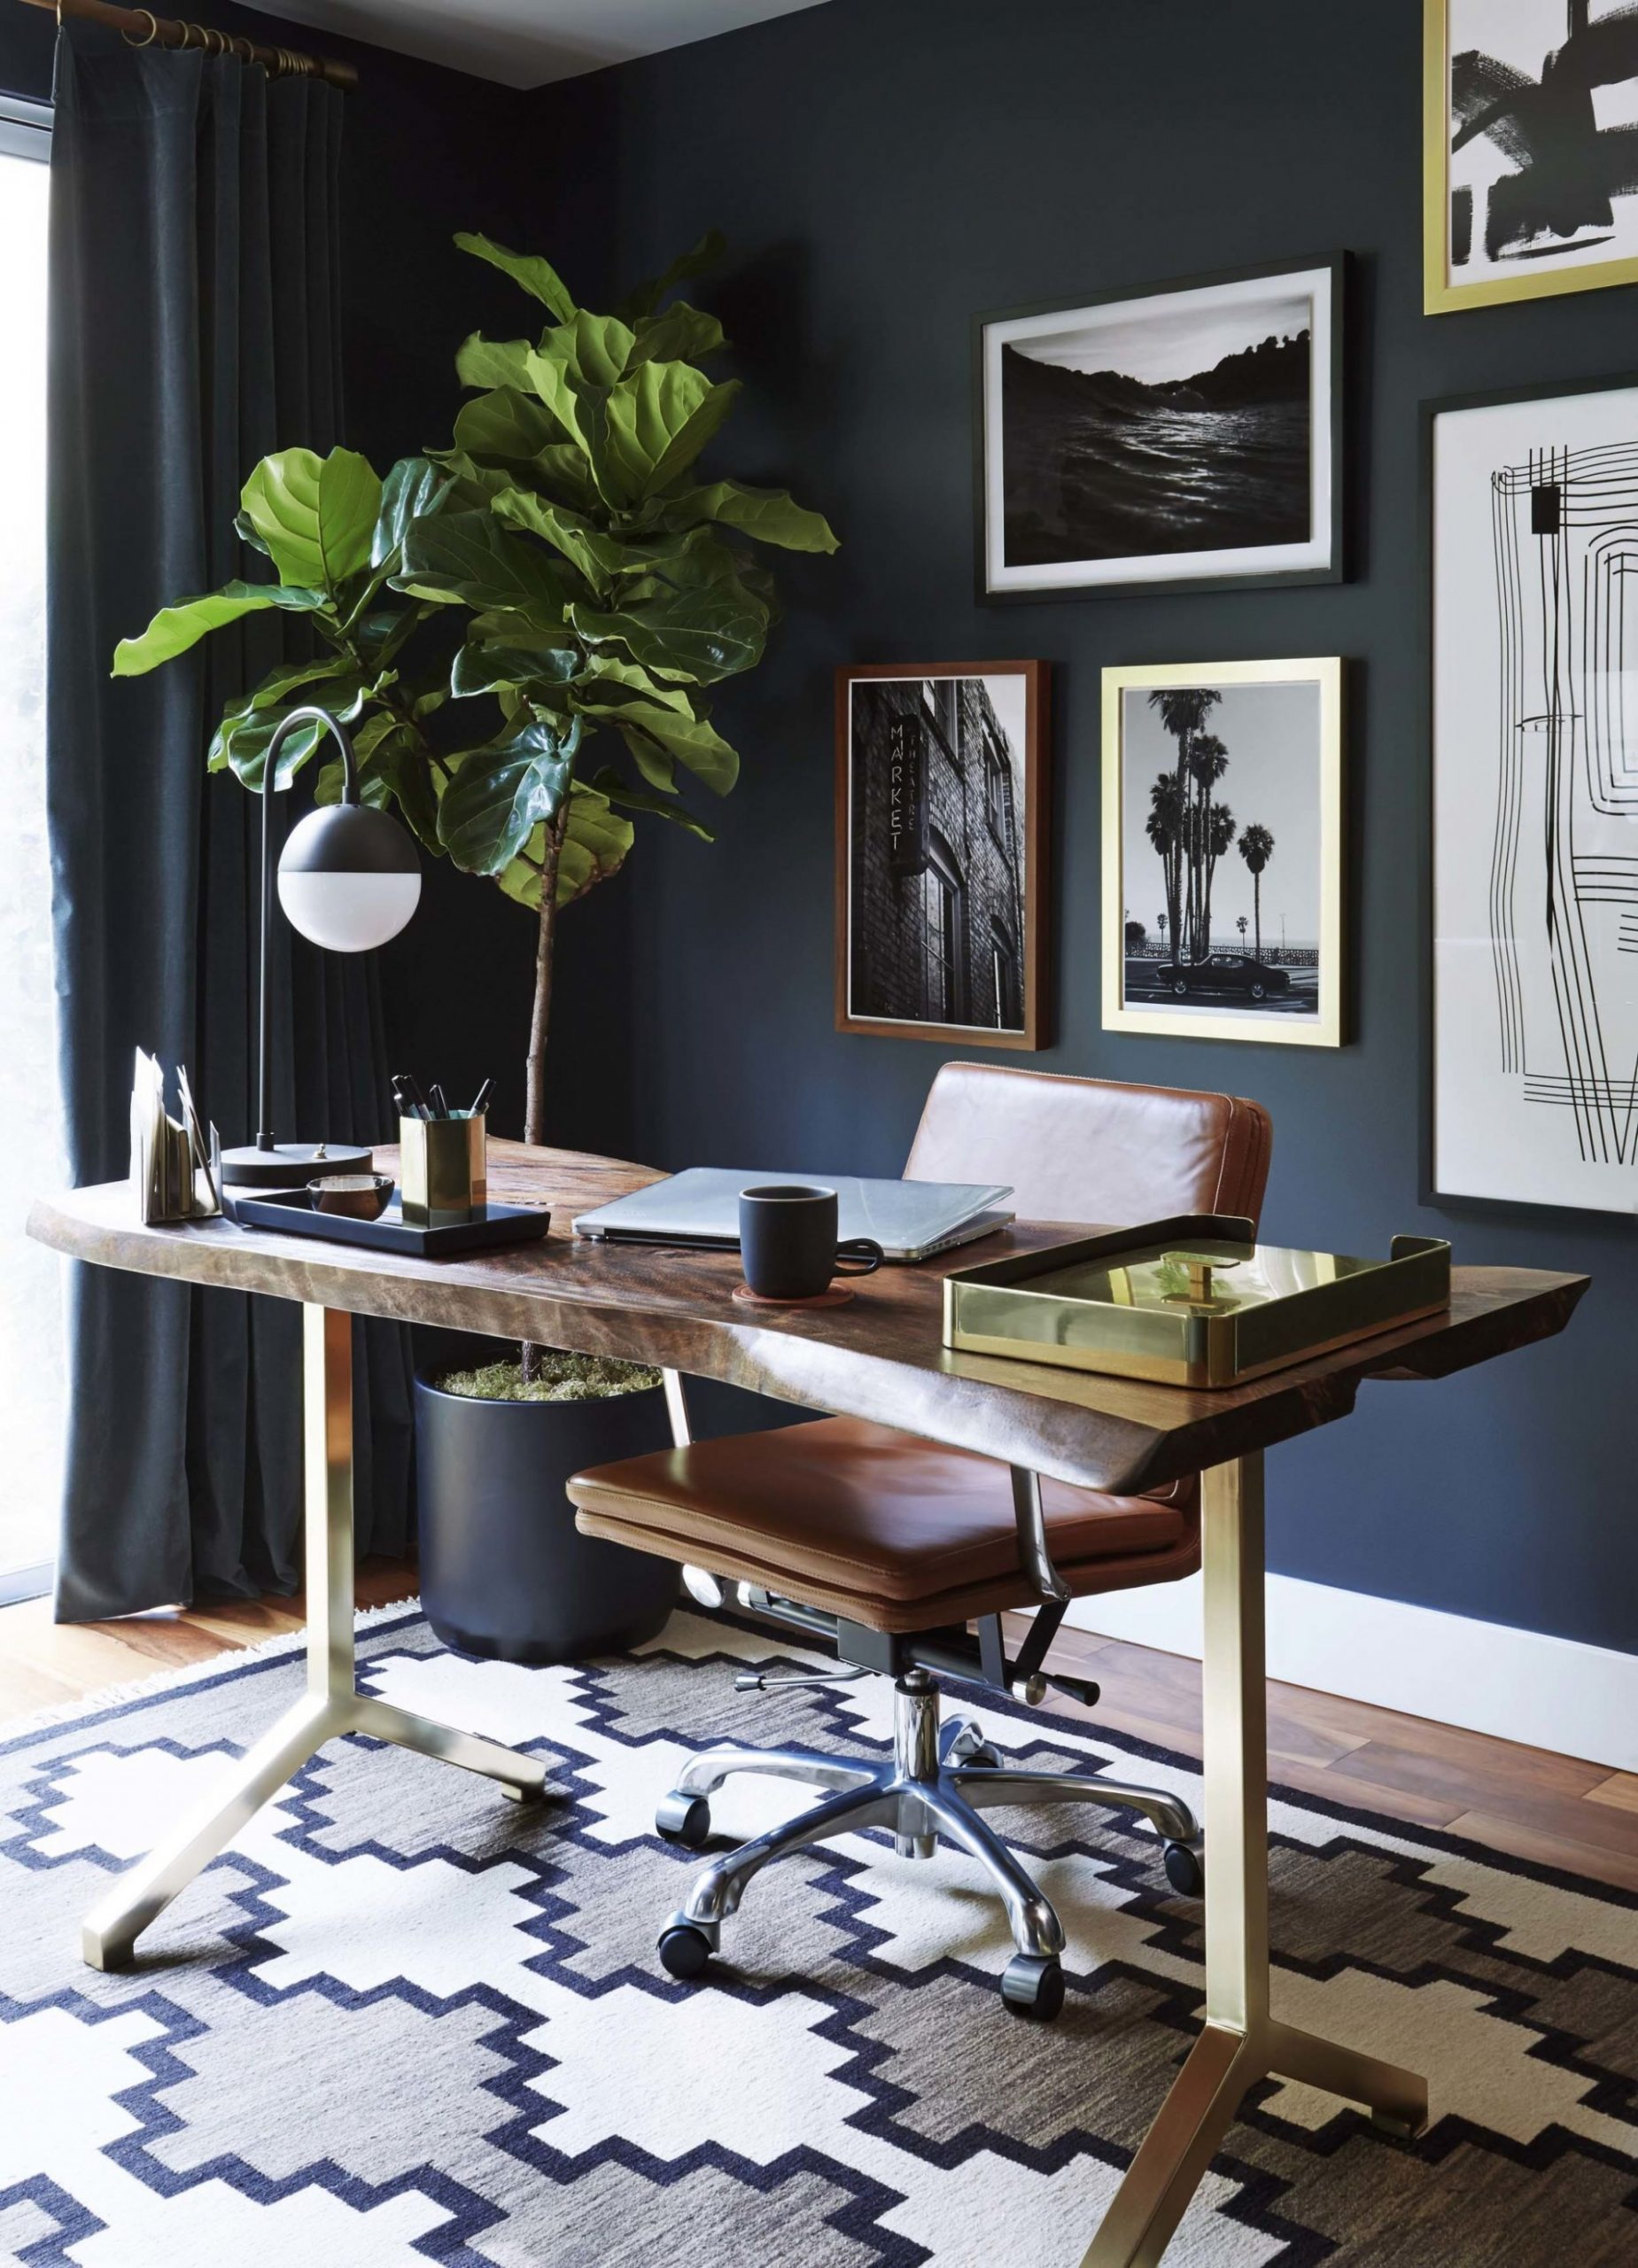 Transform your office into an inspiring environment with  - Home Office Ideas Mid-Century Modern